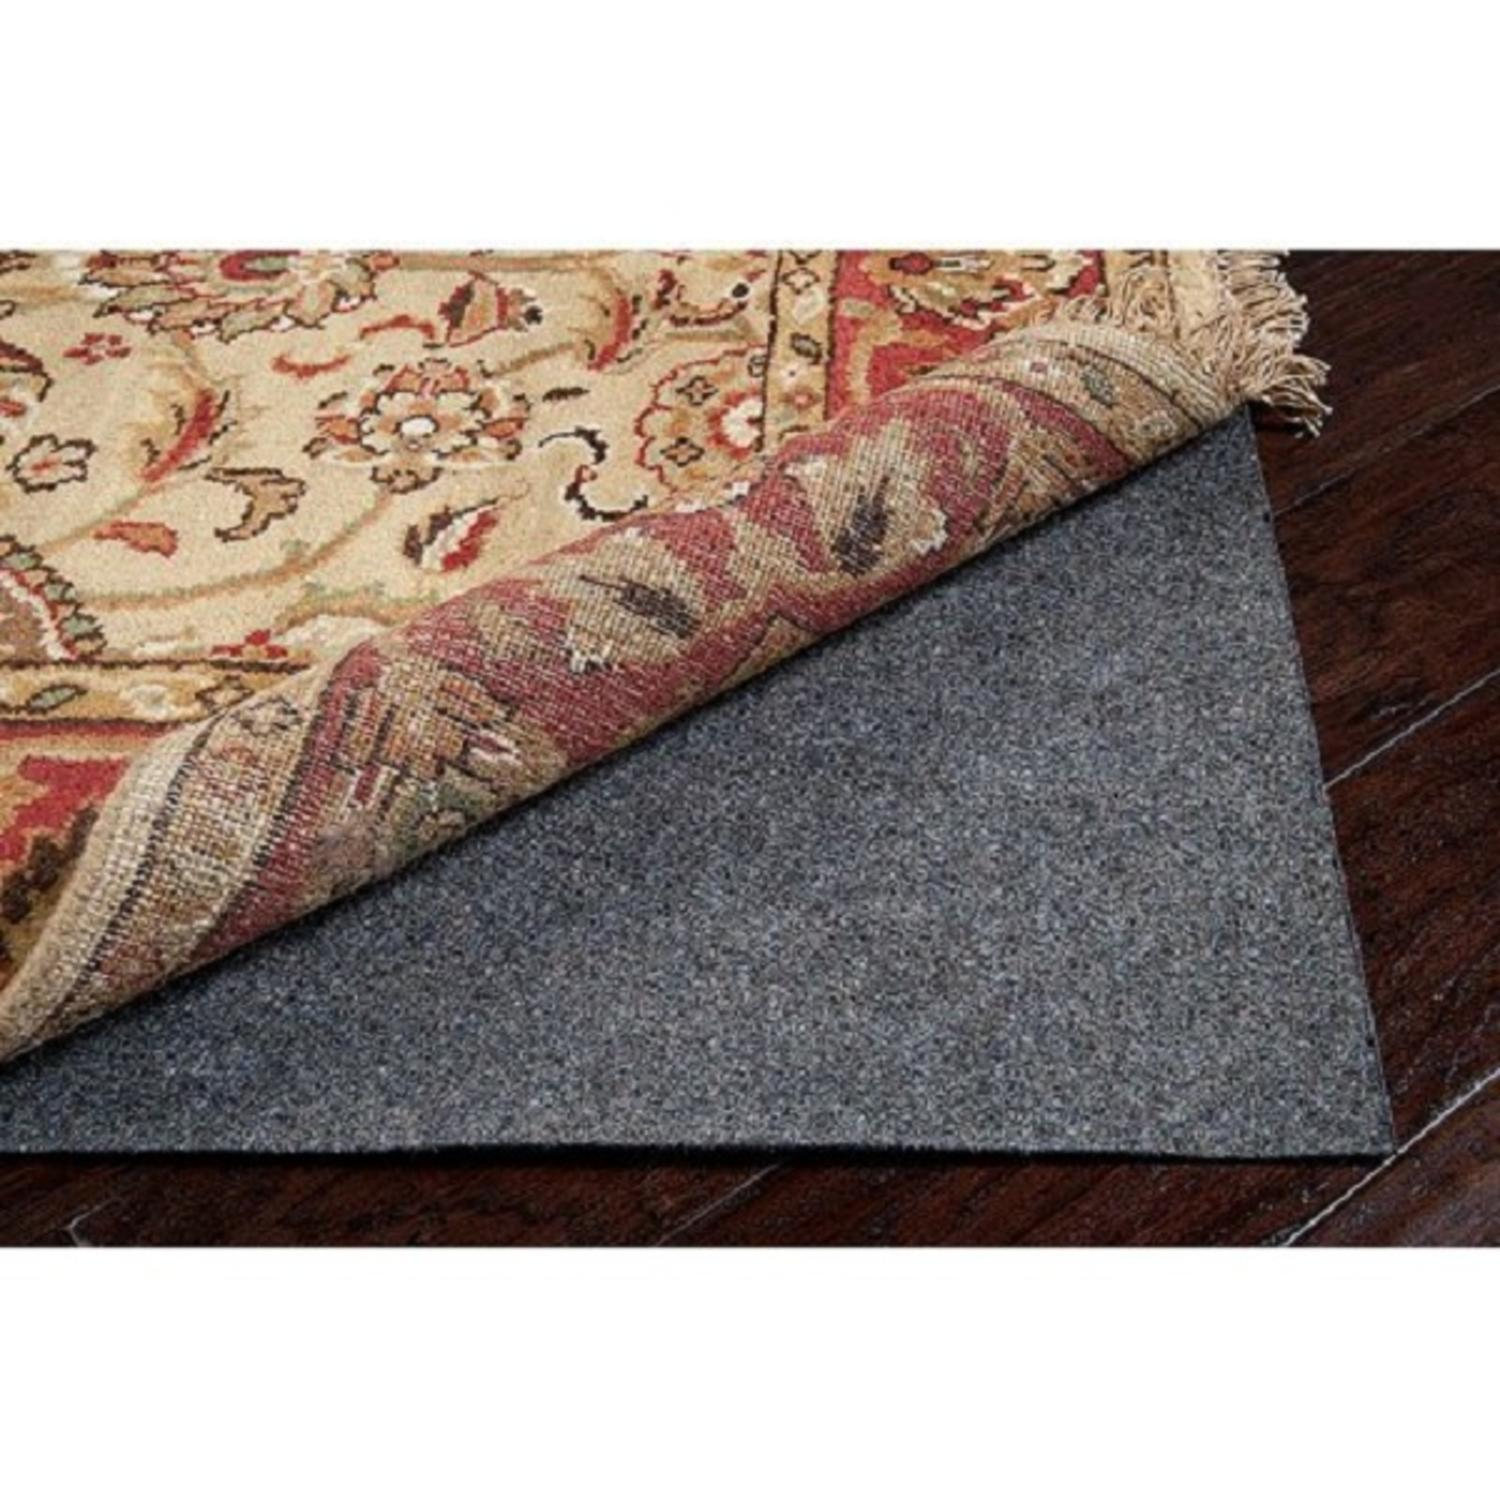 Gray Recycled Fiber Standard Reversible Felted Pad for an 8' x 10' Oval Area Rug